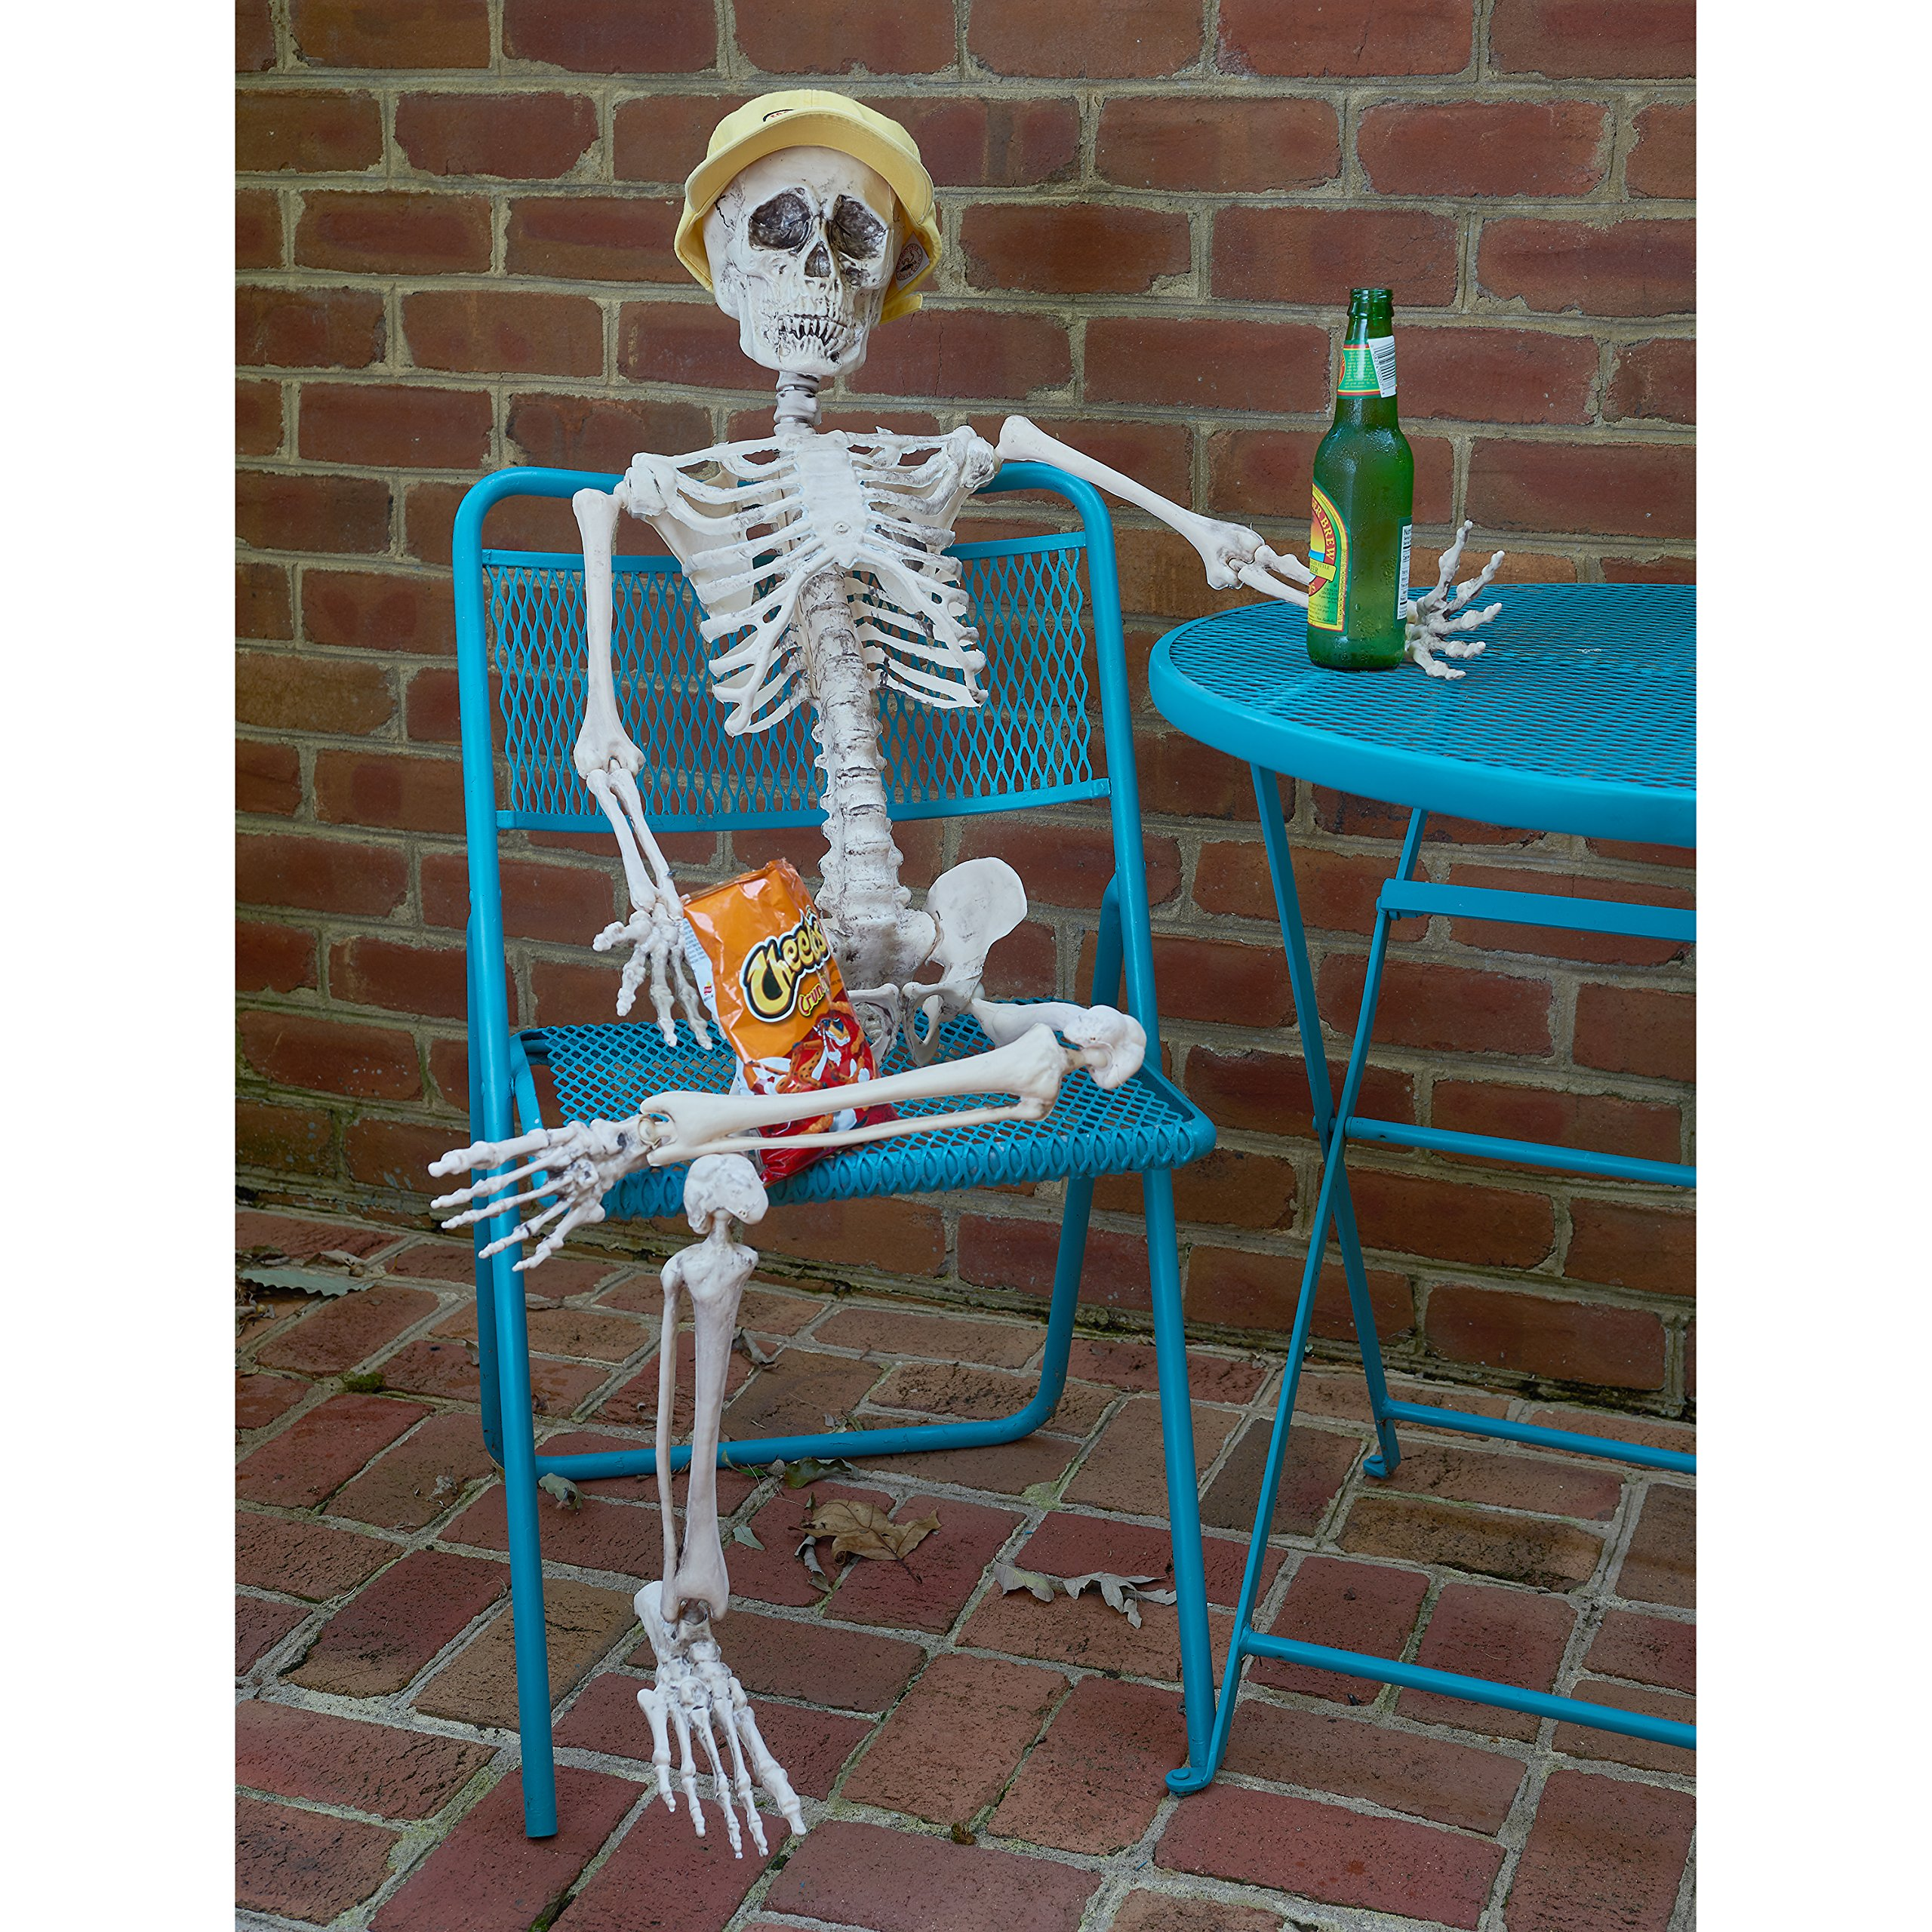 Prextex Tall Posable Halloween Skeleton- Full Body Halloween Skeleton with Movable /Posable Joints for Best Halloween Decoration by Prextex